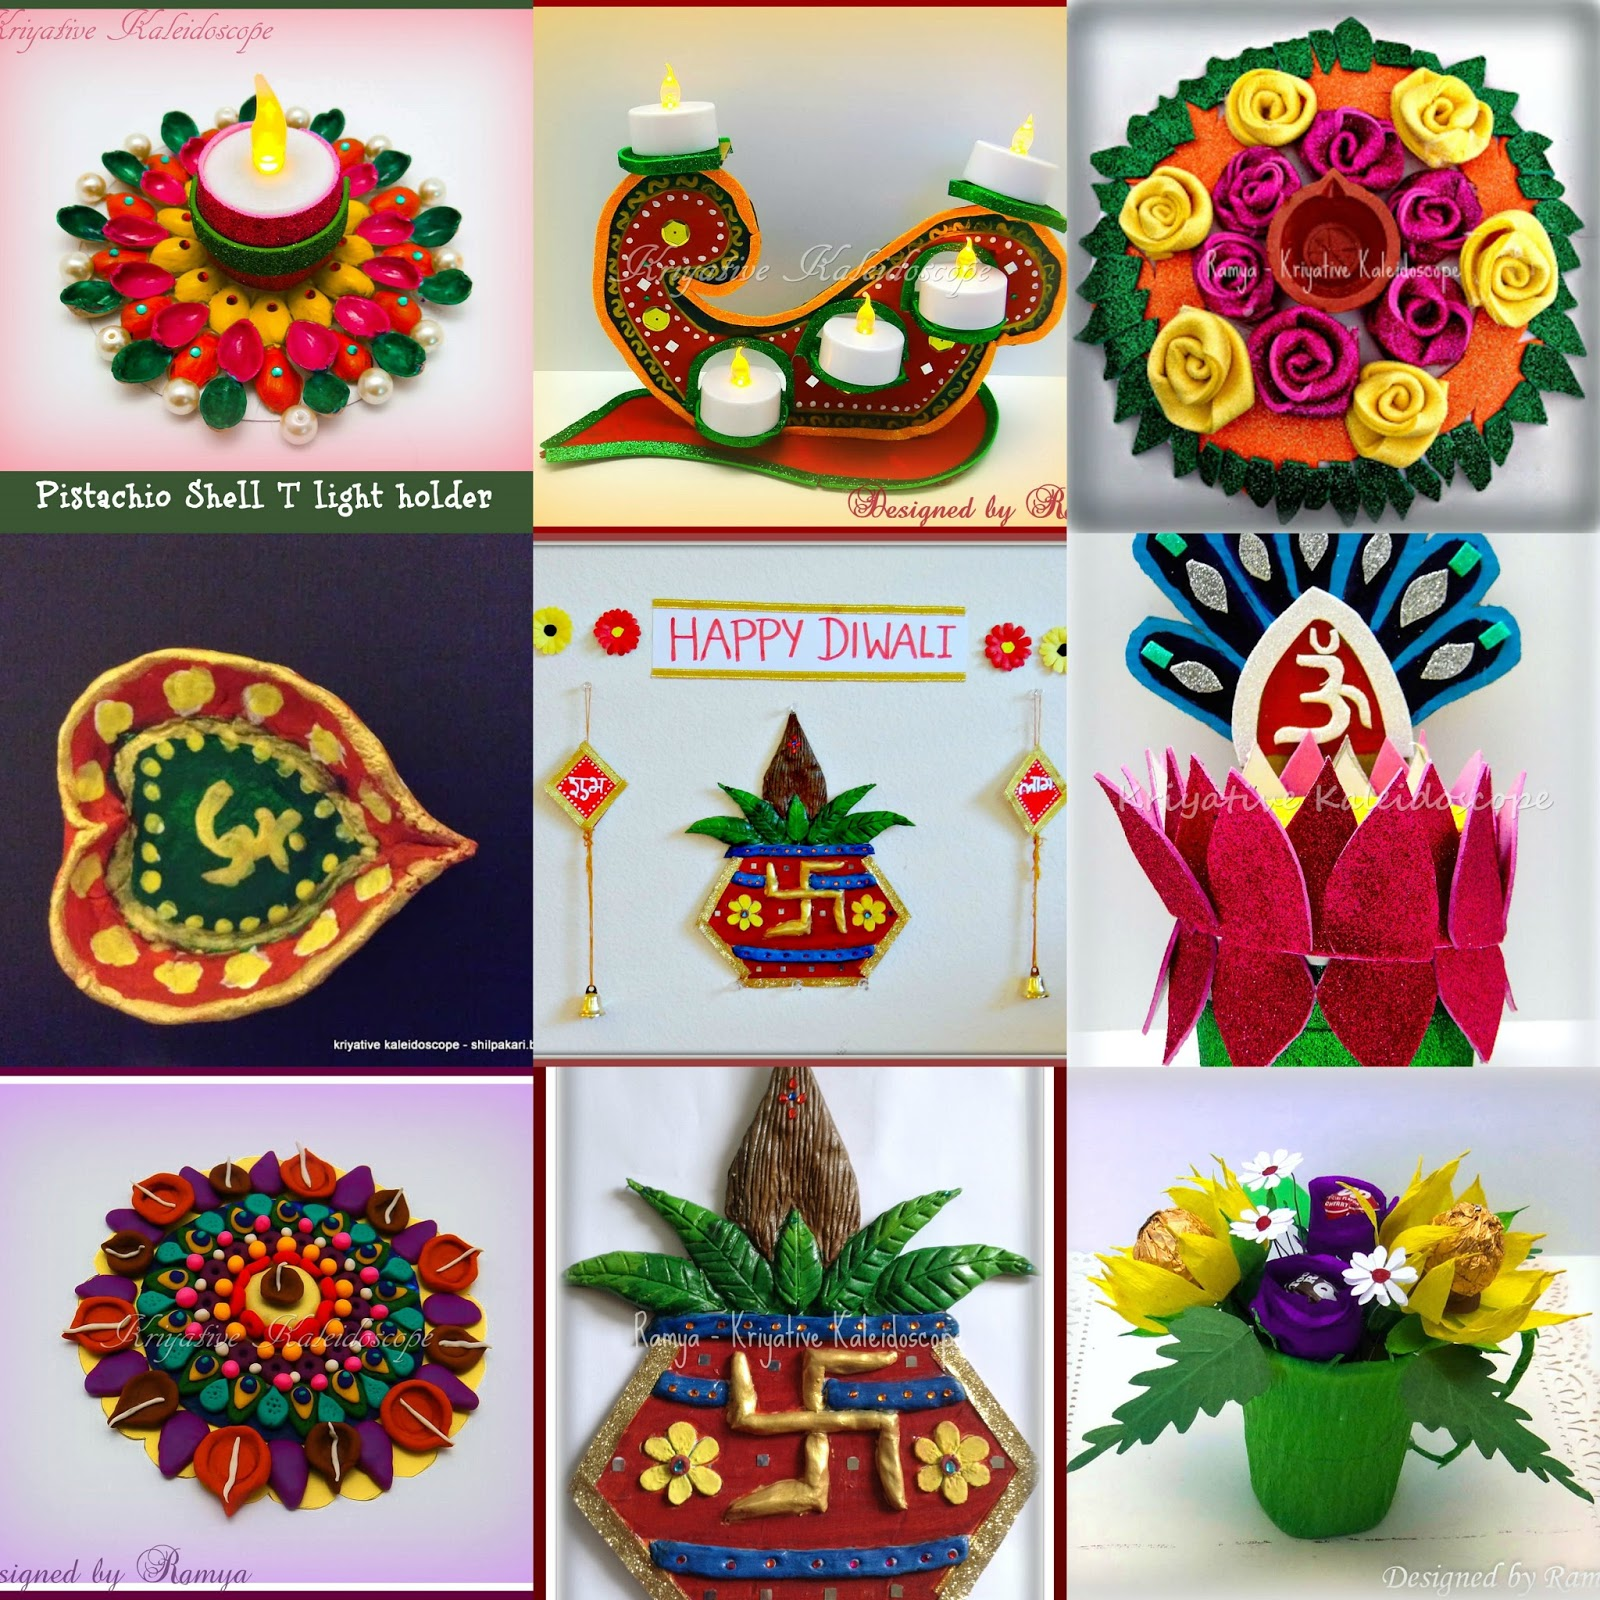 Diwali Decoration Ideas And Crafts Kriya Tive Kaleidoscope 10 Unique Diwali Crafts And Decor